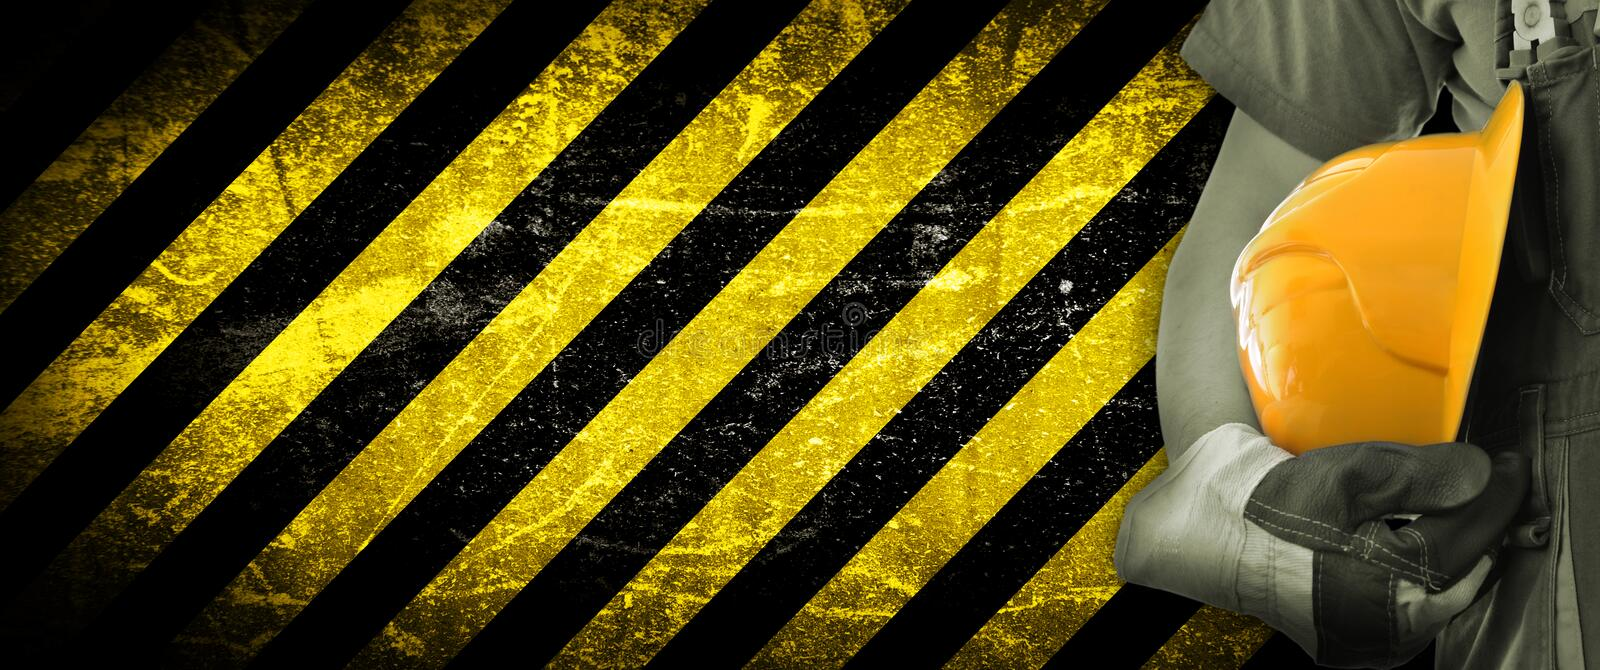 Worker and grunge texture in background royalty free stock photography